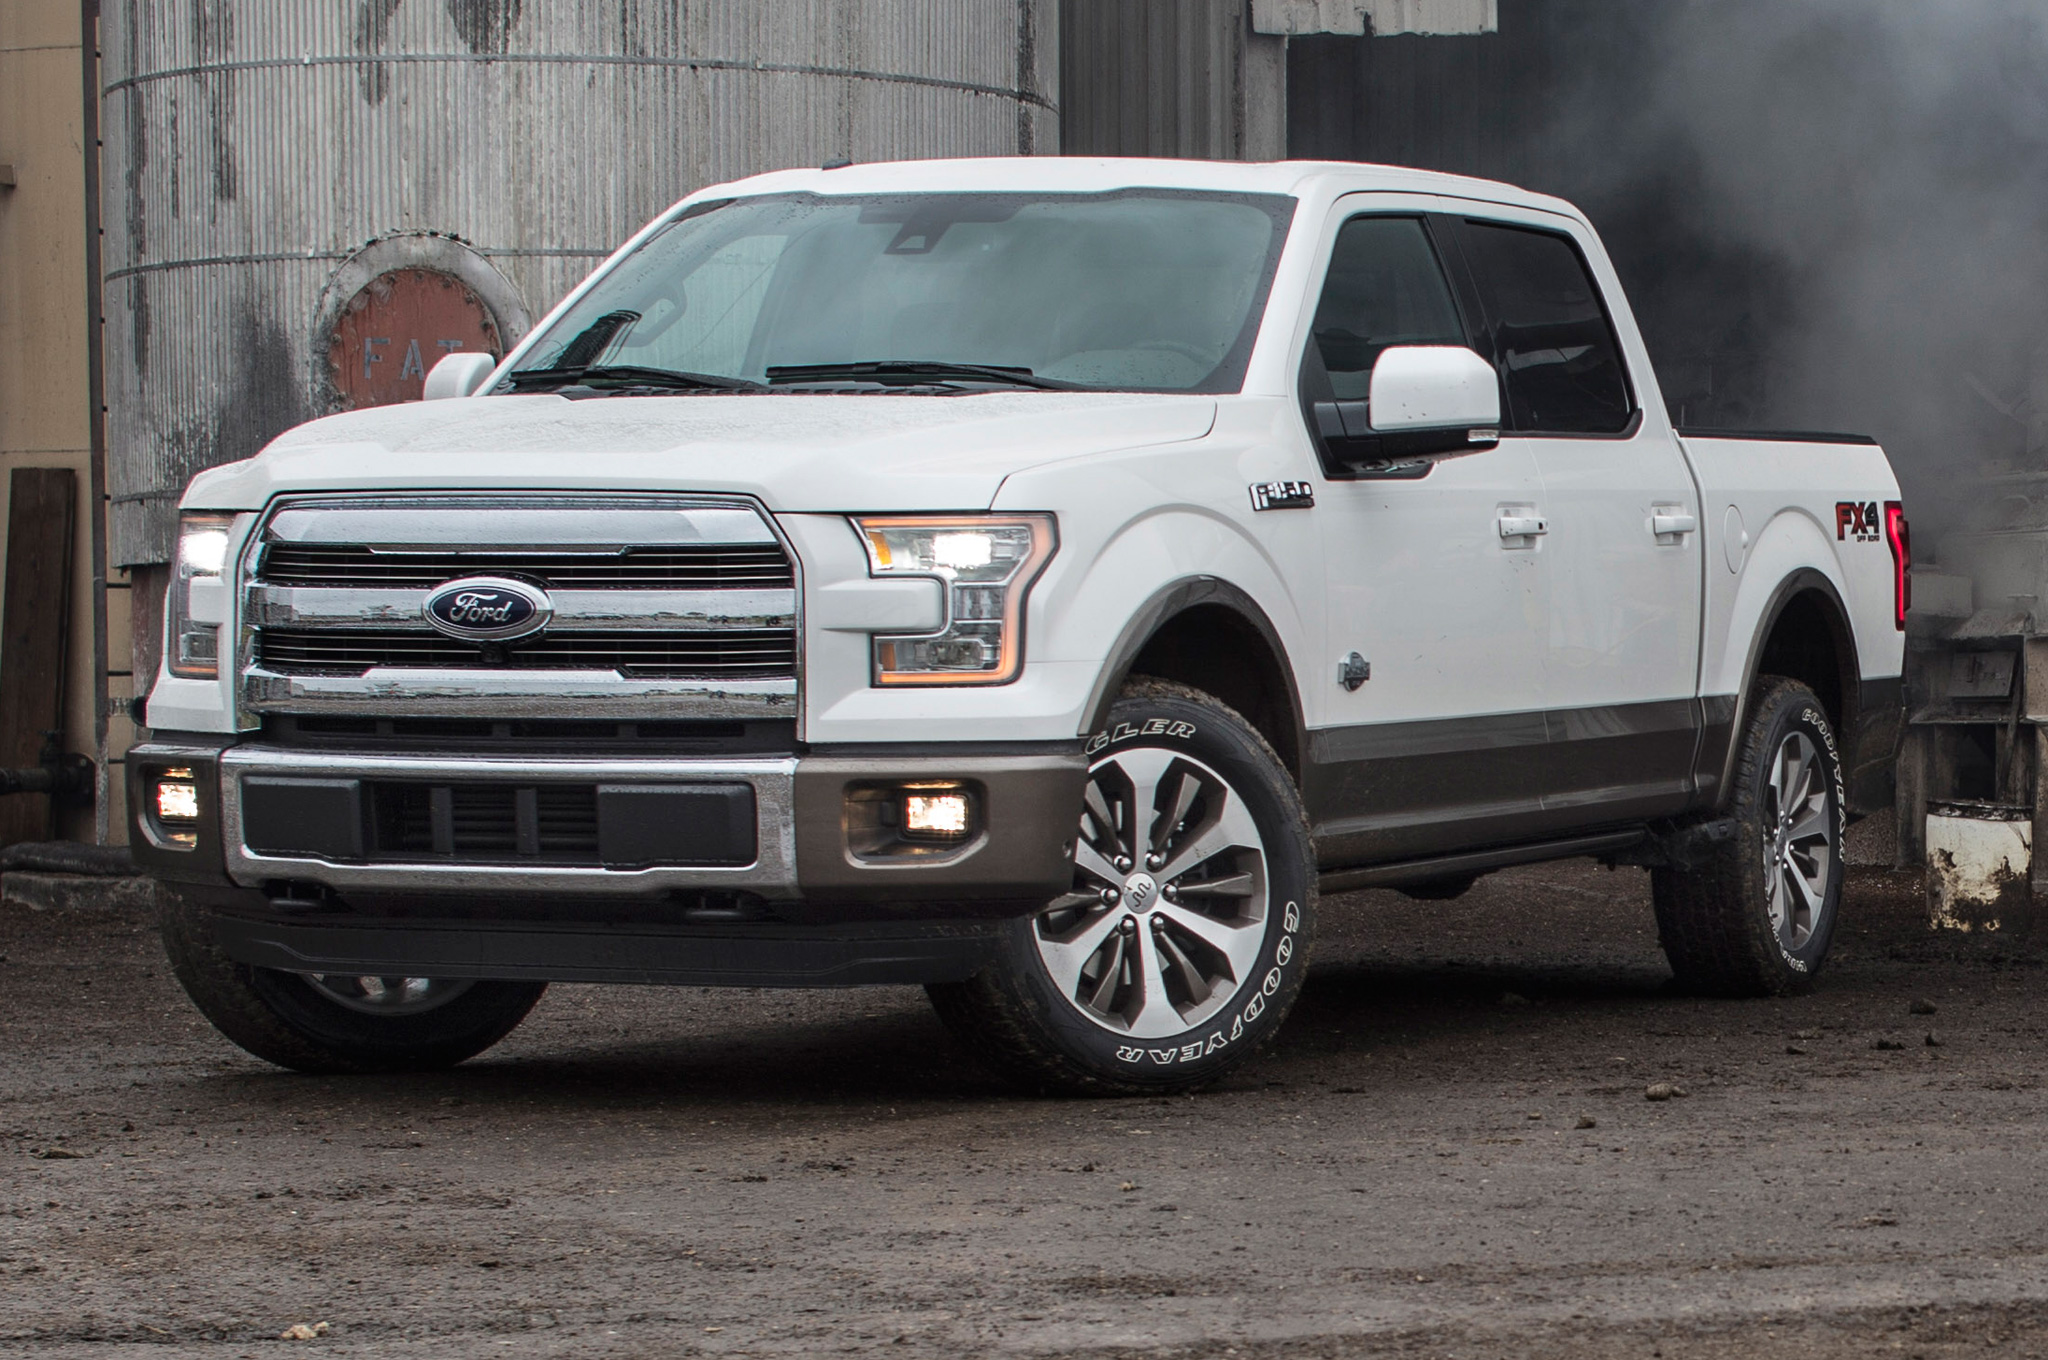 Ford F-250 Super Duty 2015 #4